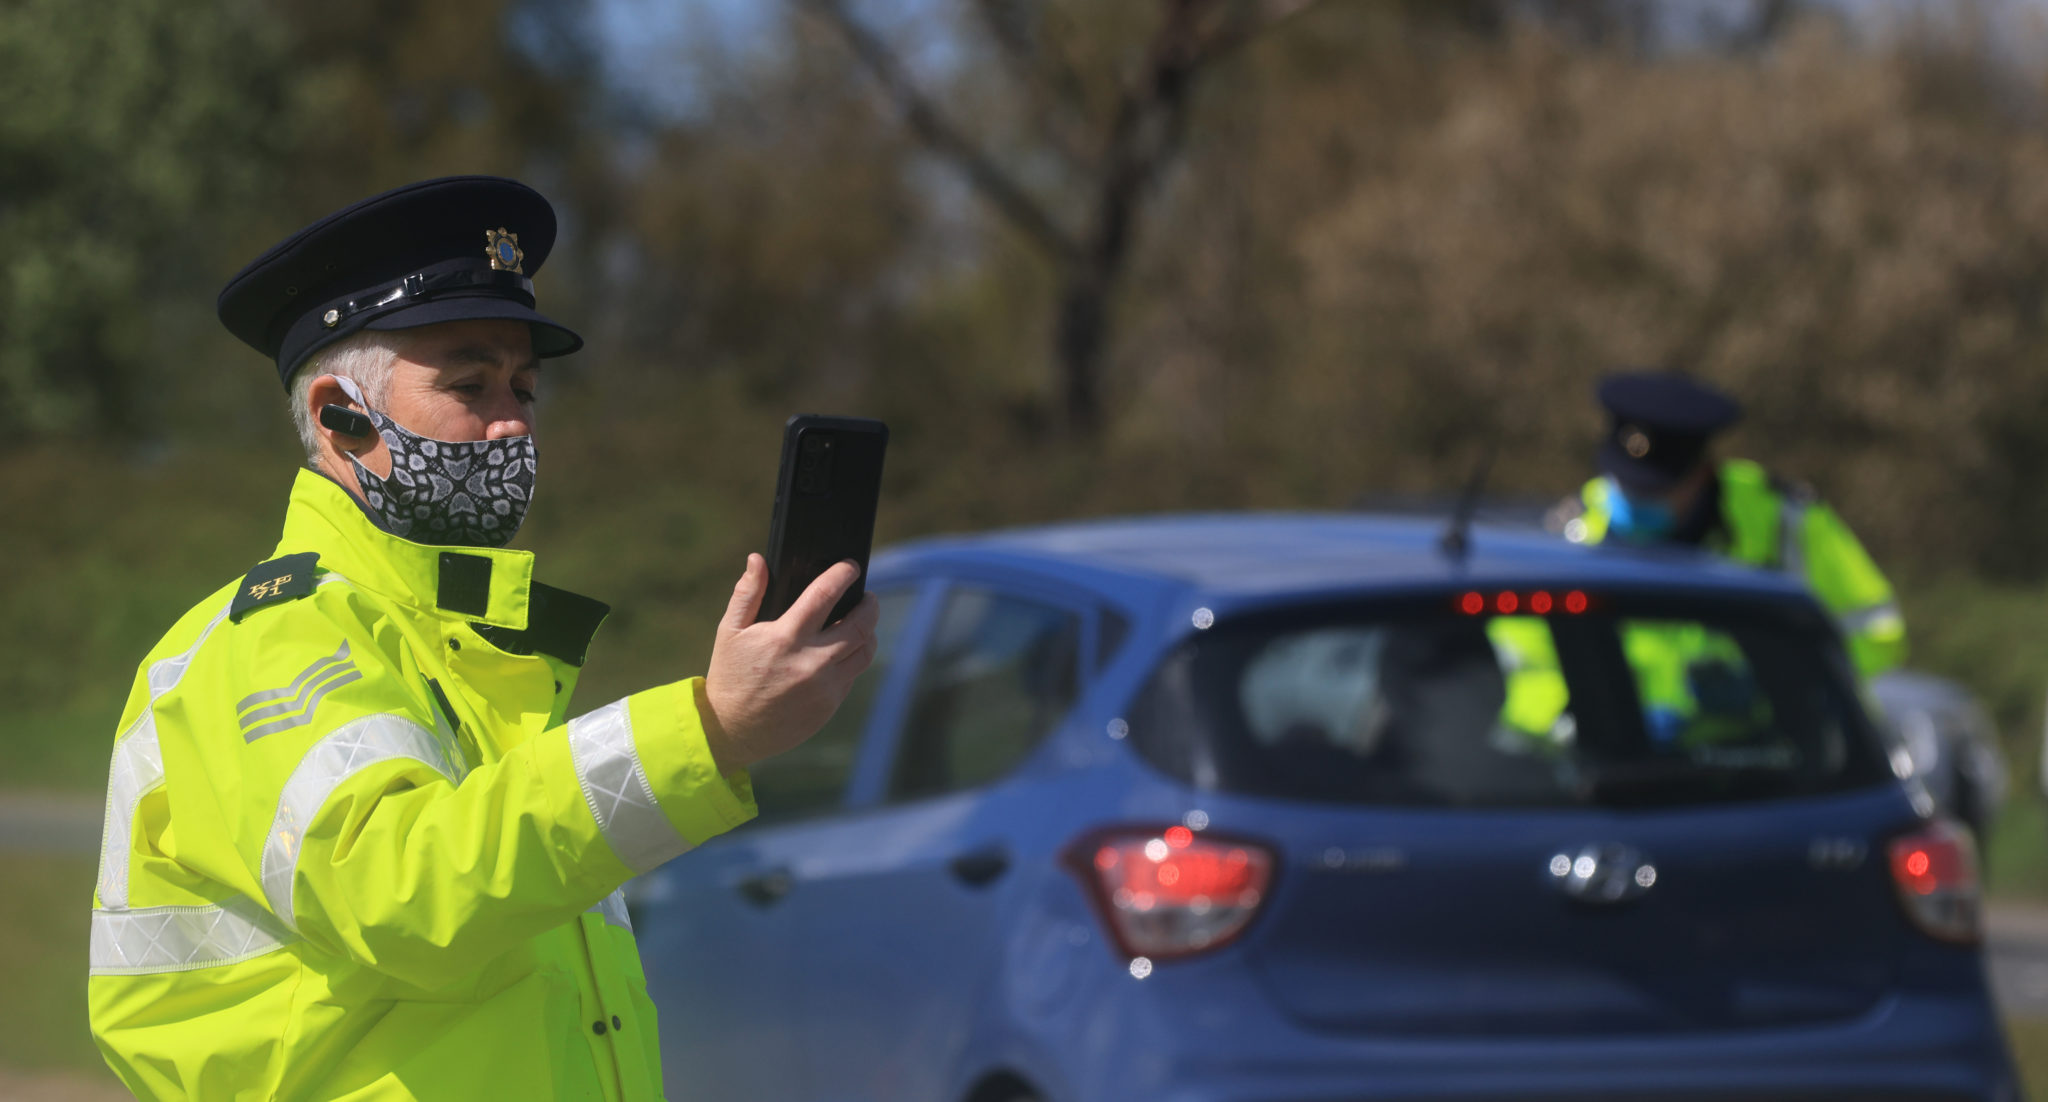 Gardaí at a checkpoint outside Naas, Co Kildare using smartphones running the new Garda Mobility App to detect whether cars are out of insurance.